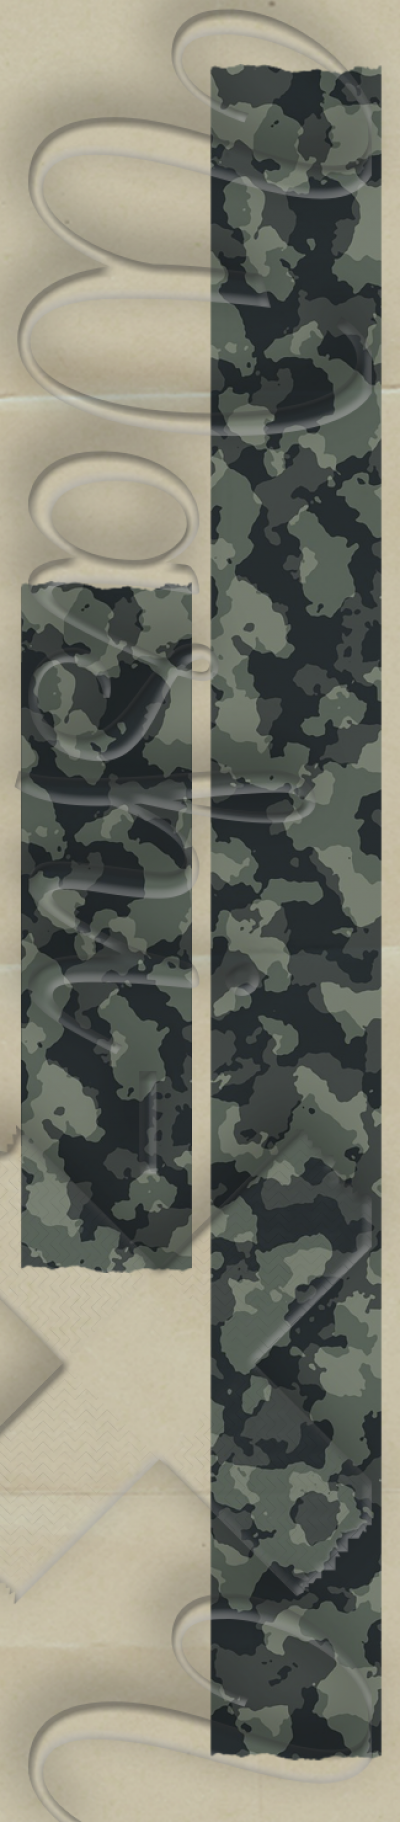 Army patterned washi tape